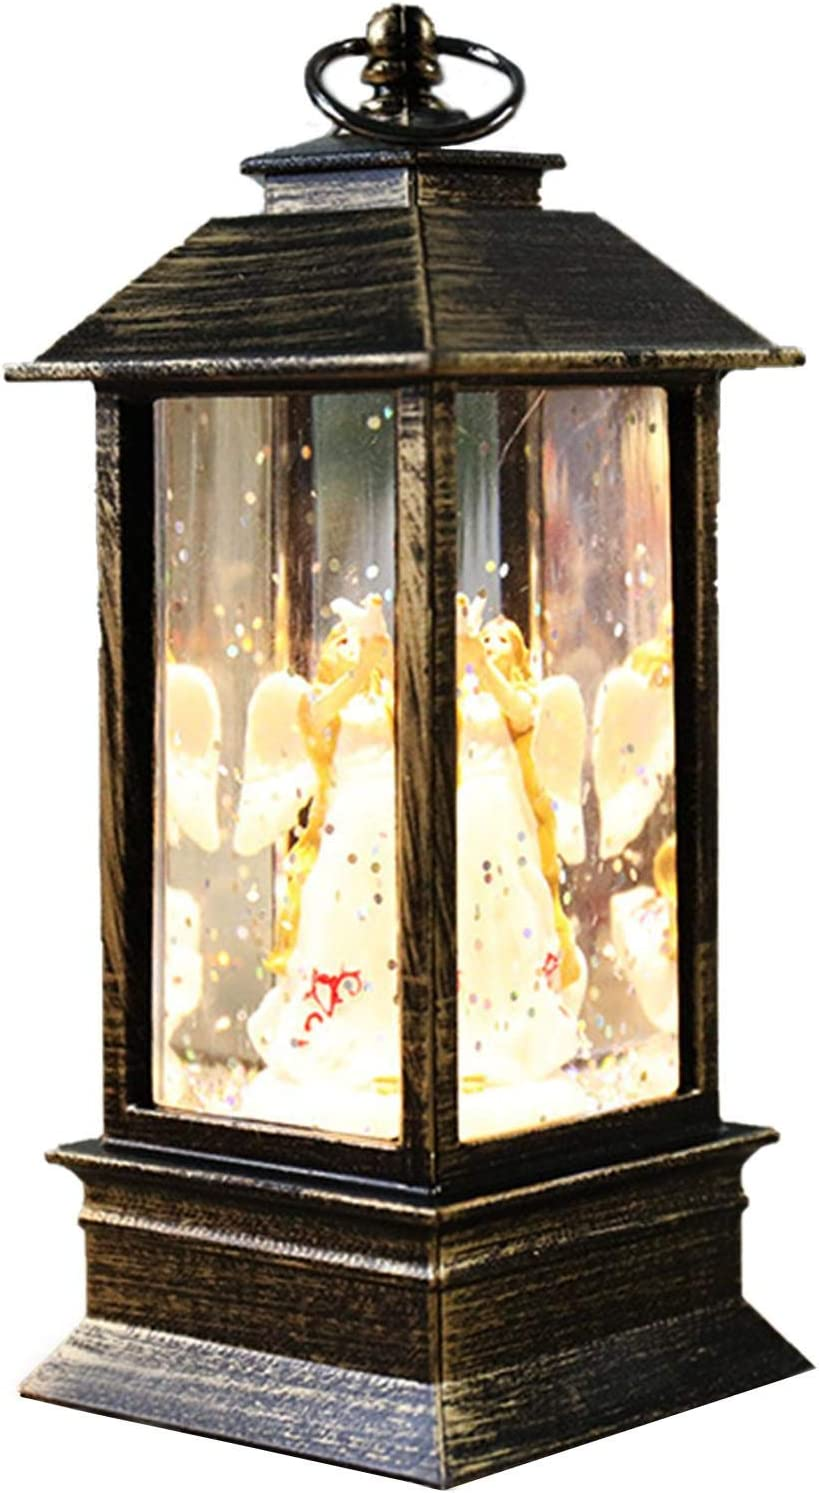 Purelemon Christmas Snow Globe Lantern, Battery Operated Lighted Vintage Style Lantern Hanging Flameless Lamp for Christmas Home Decoration, Glitter Angel